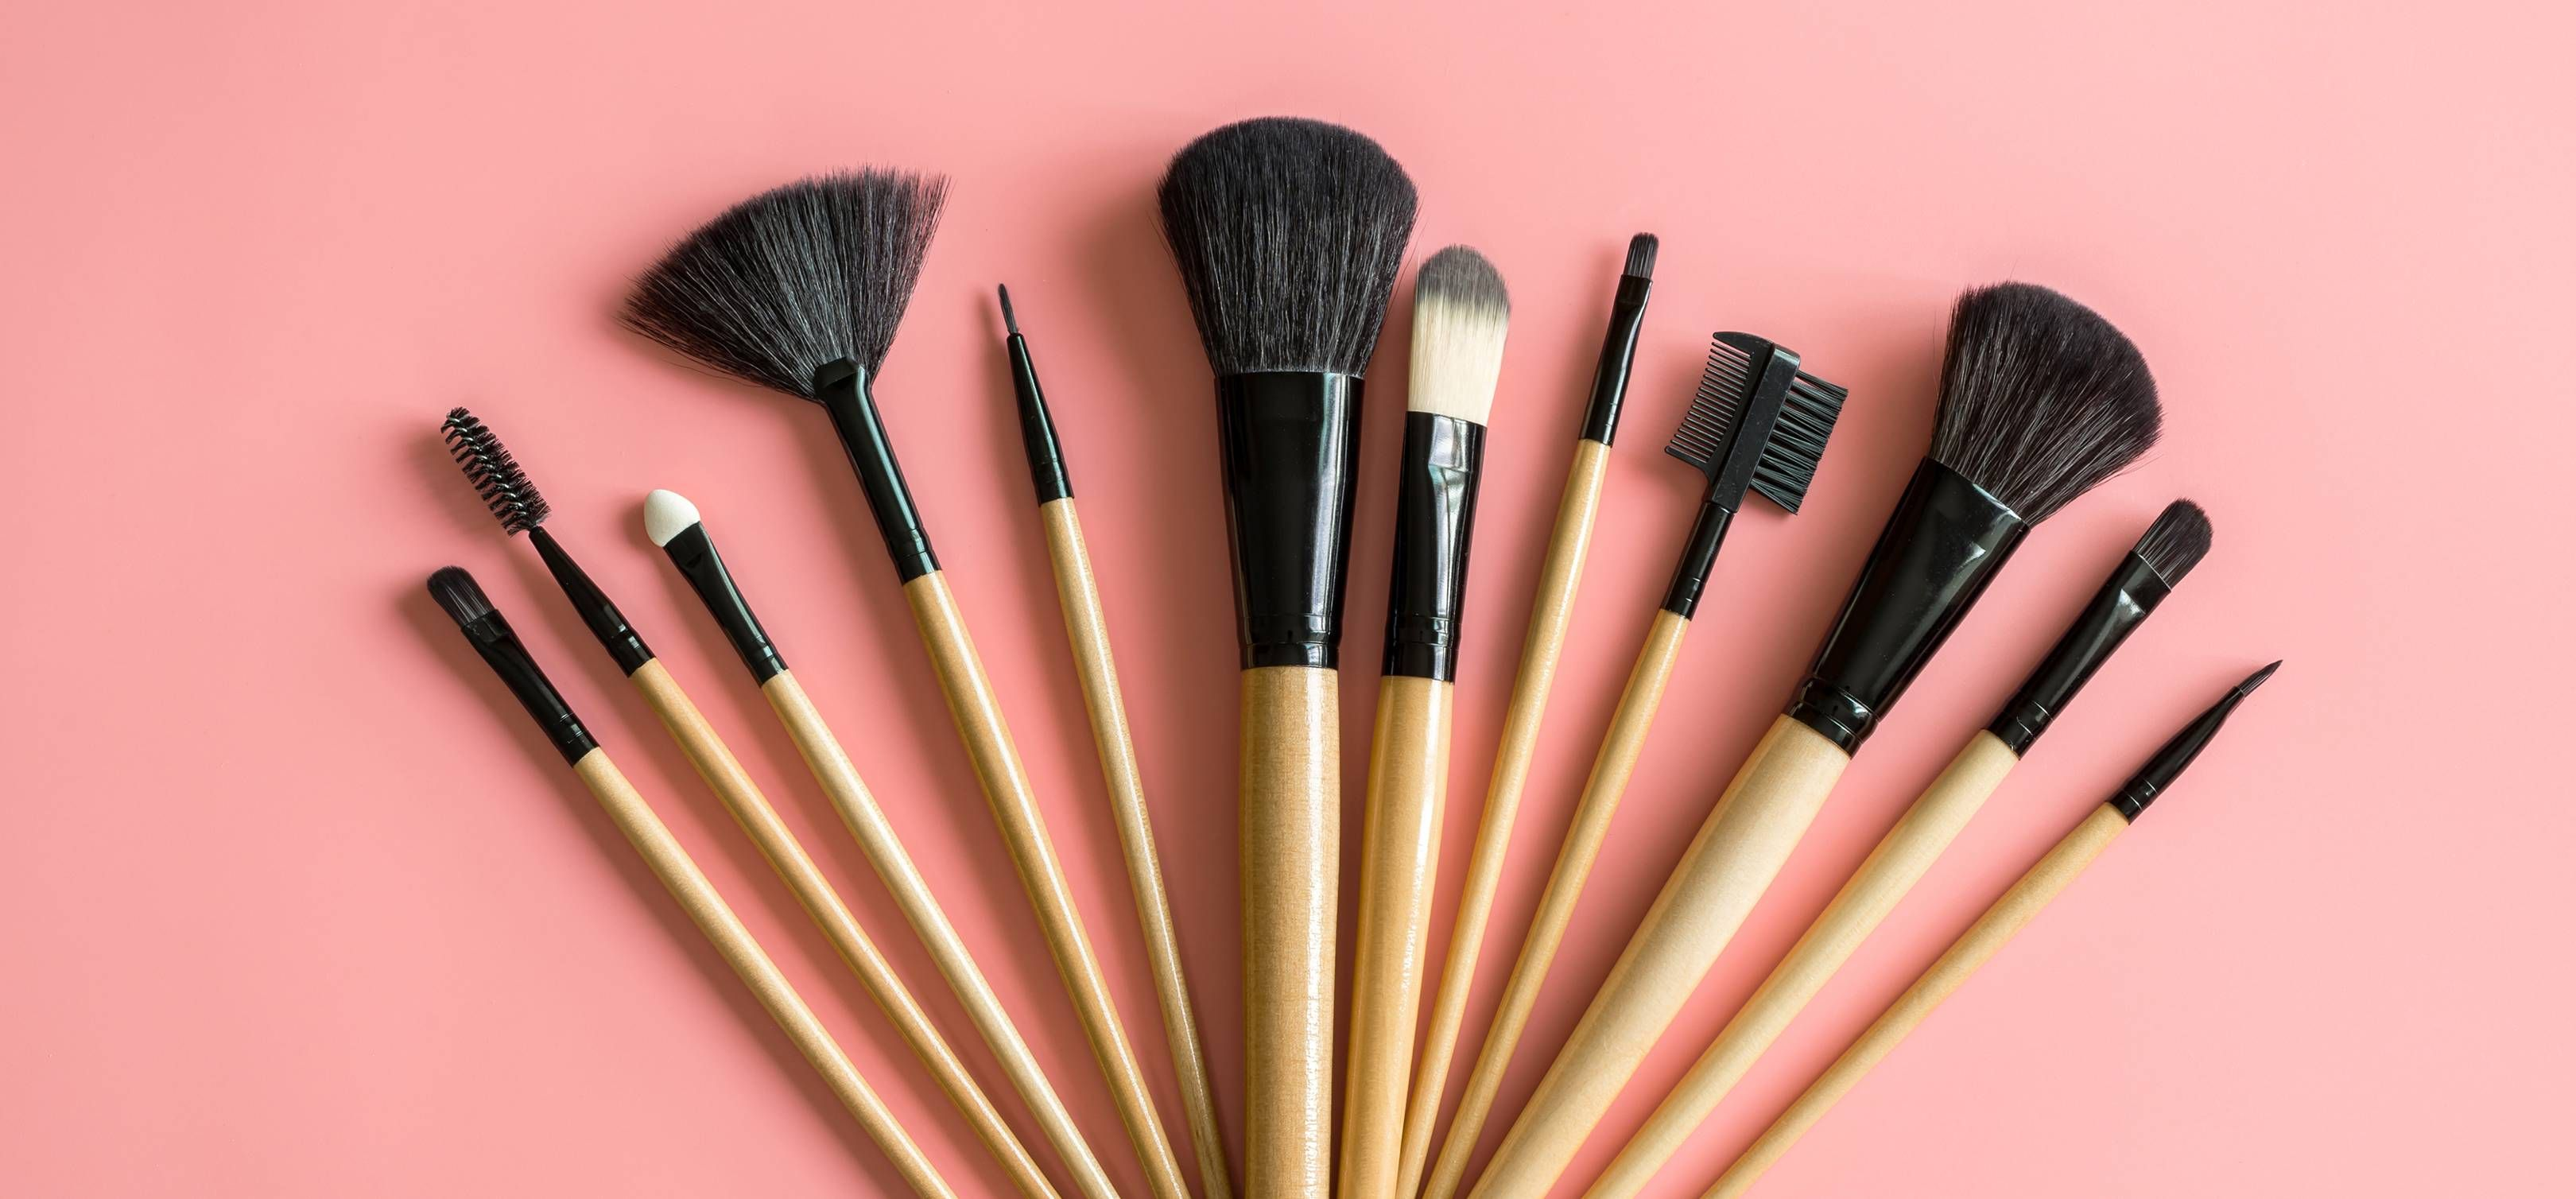 Angled, kabuki or domed? This is what each makeup brush